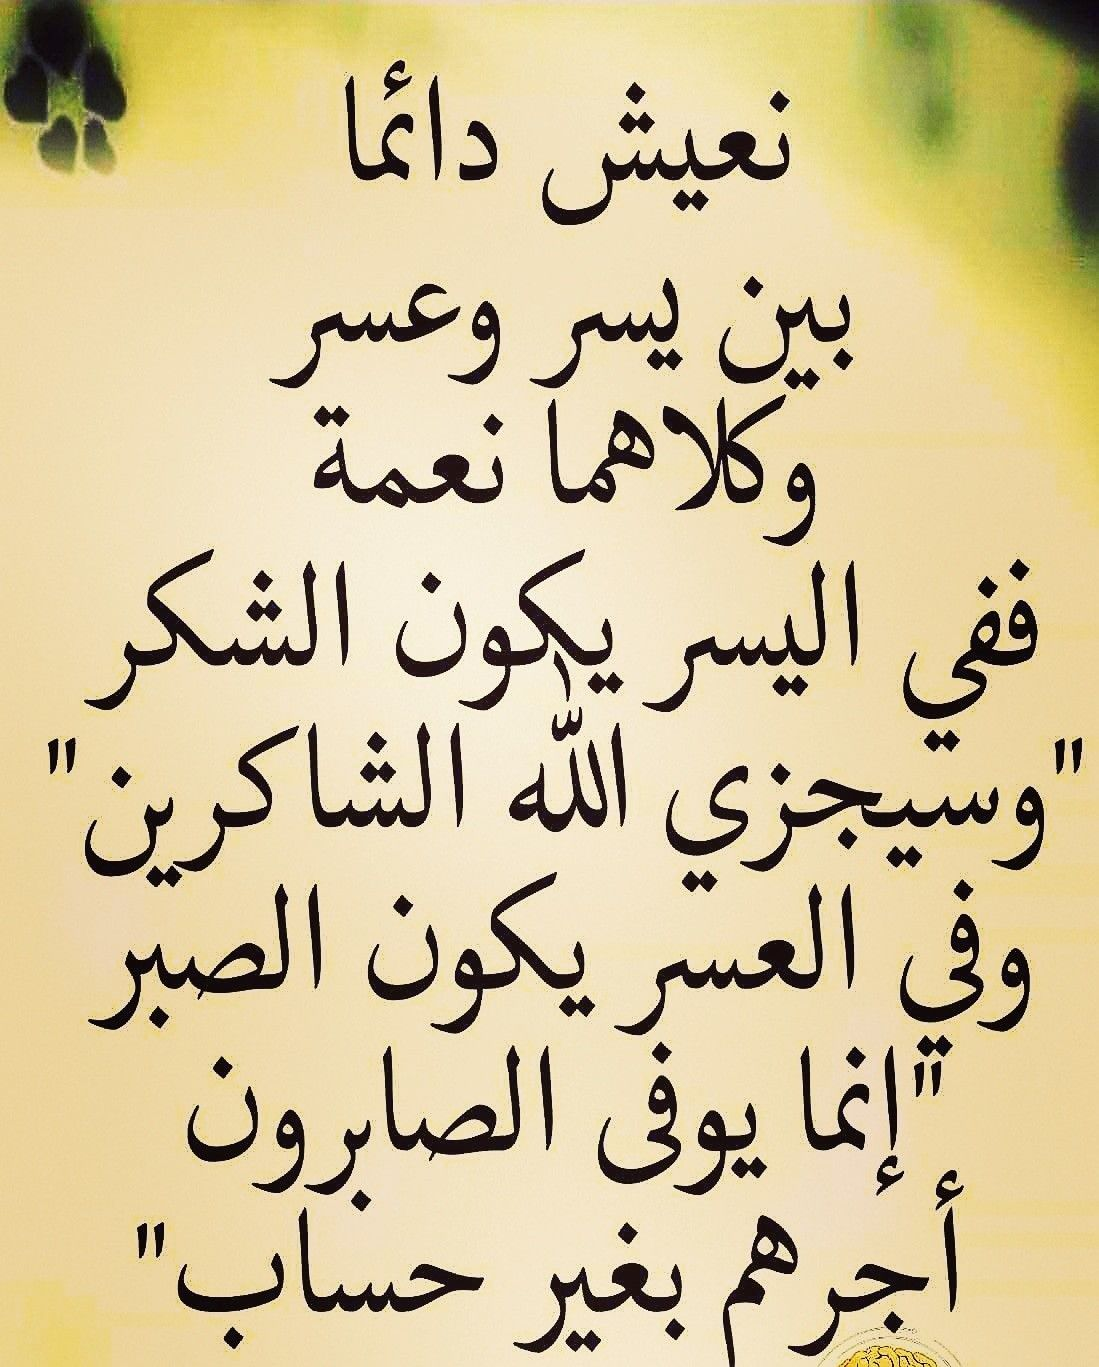 Pin By The Noble Quran On I Love Allah Quran Islam The Prophet Miracles Hadith Heaven Prophets Faith Prayer Dua حكم وعبر احاديث الله اسلام قرآن دعاء Islamic Inspirational Quotes Islam Facts